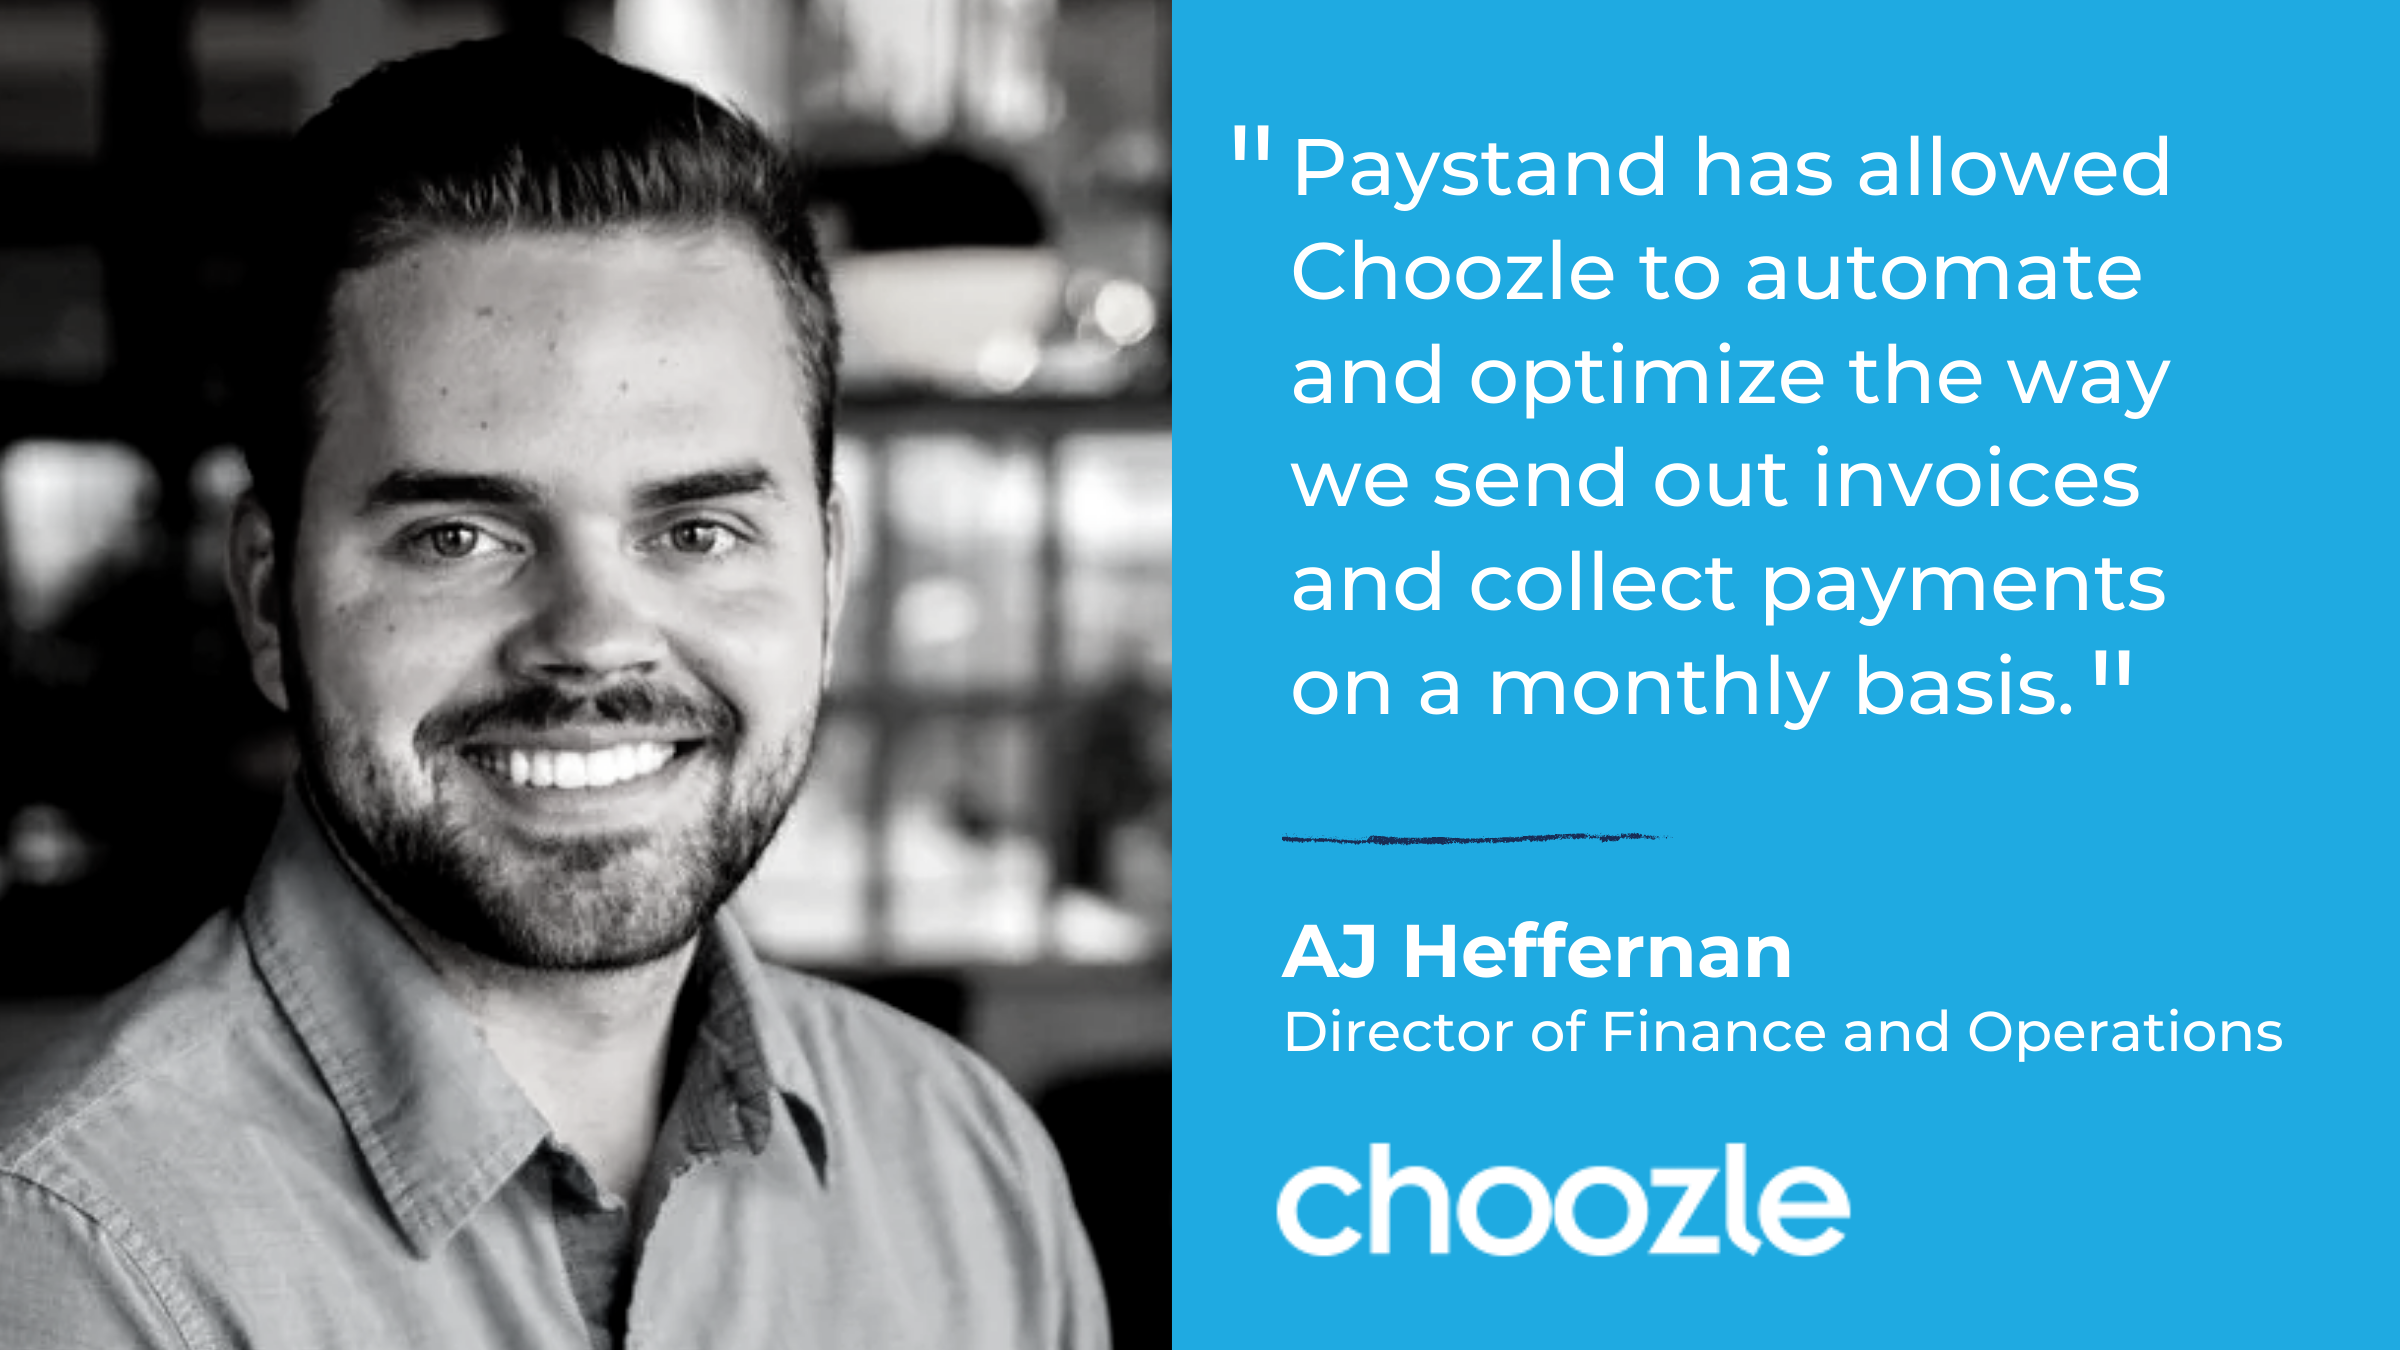 Paystand Choozle Case Study AJ Heffernan